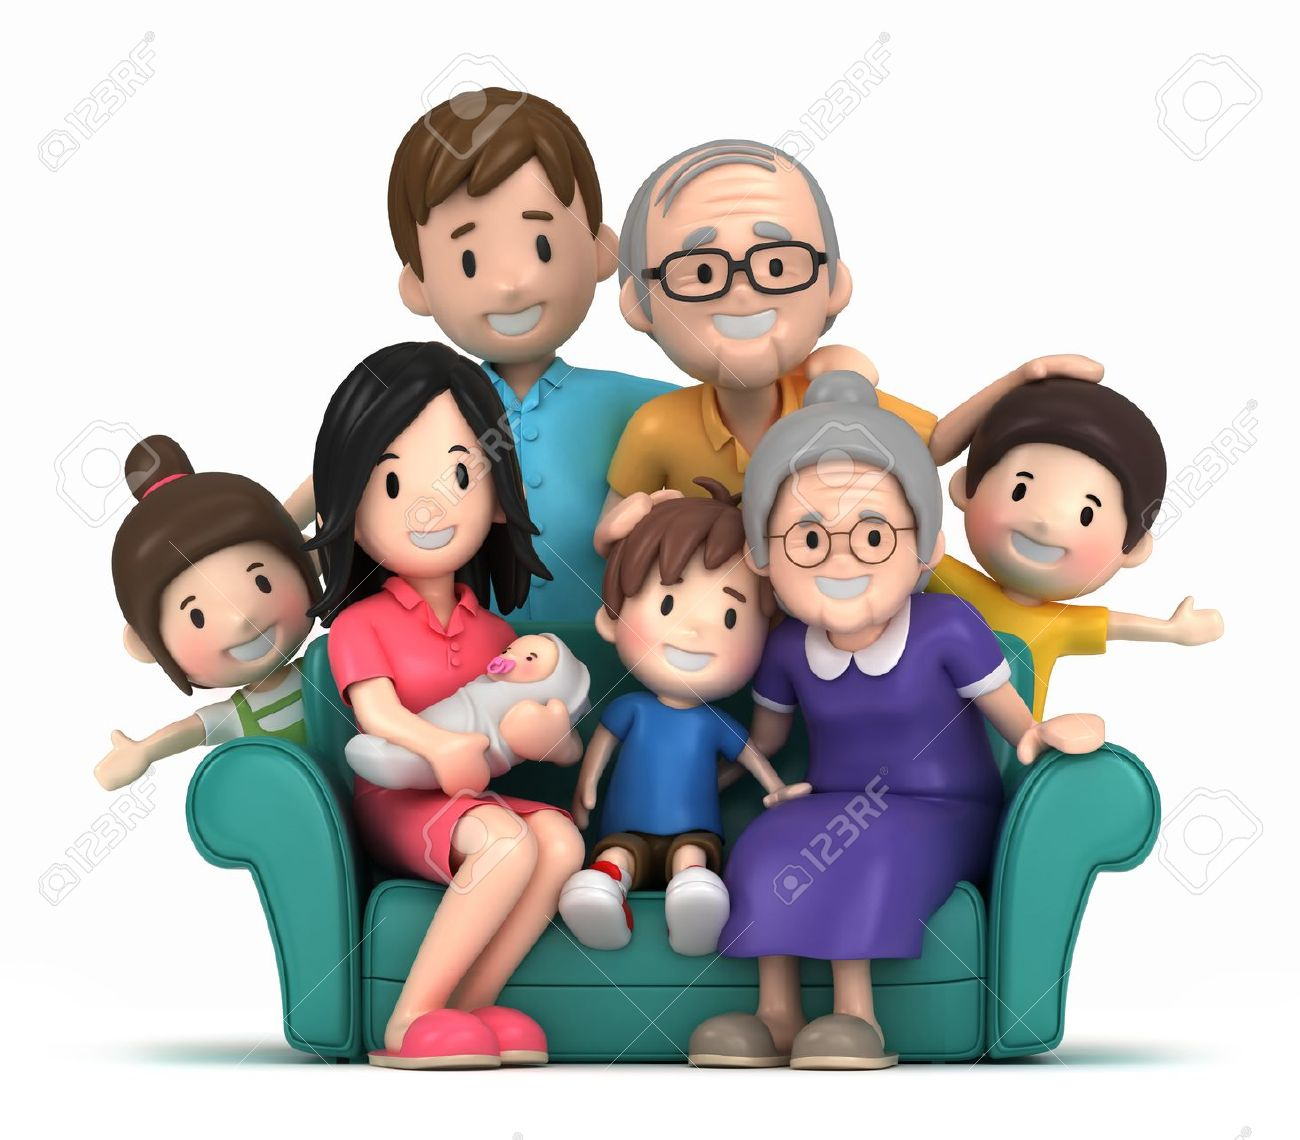 Family bonding clipart.